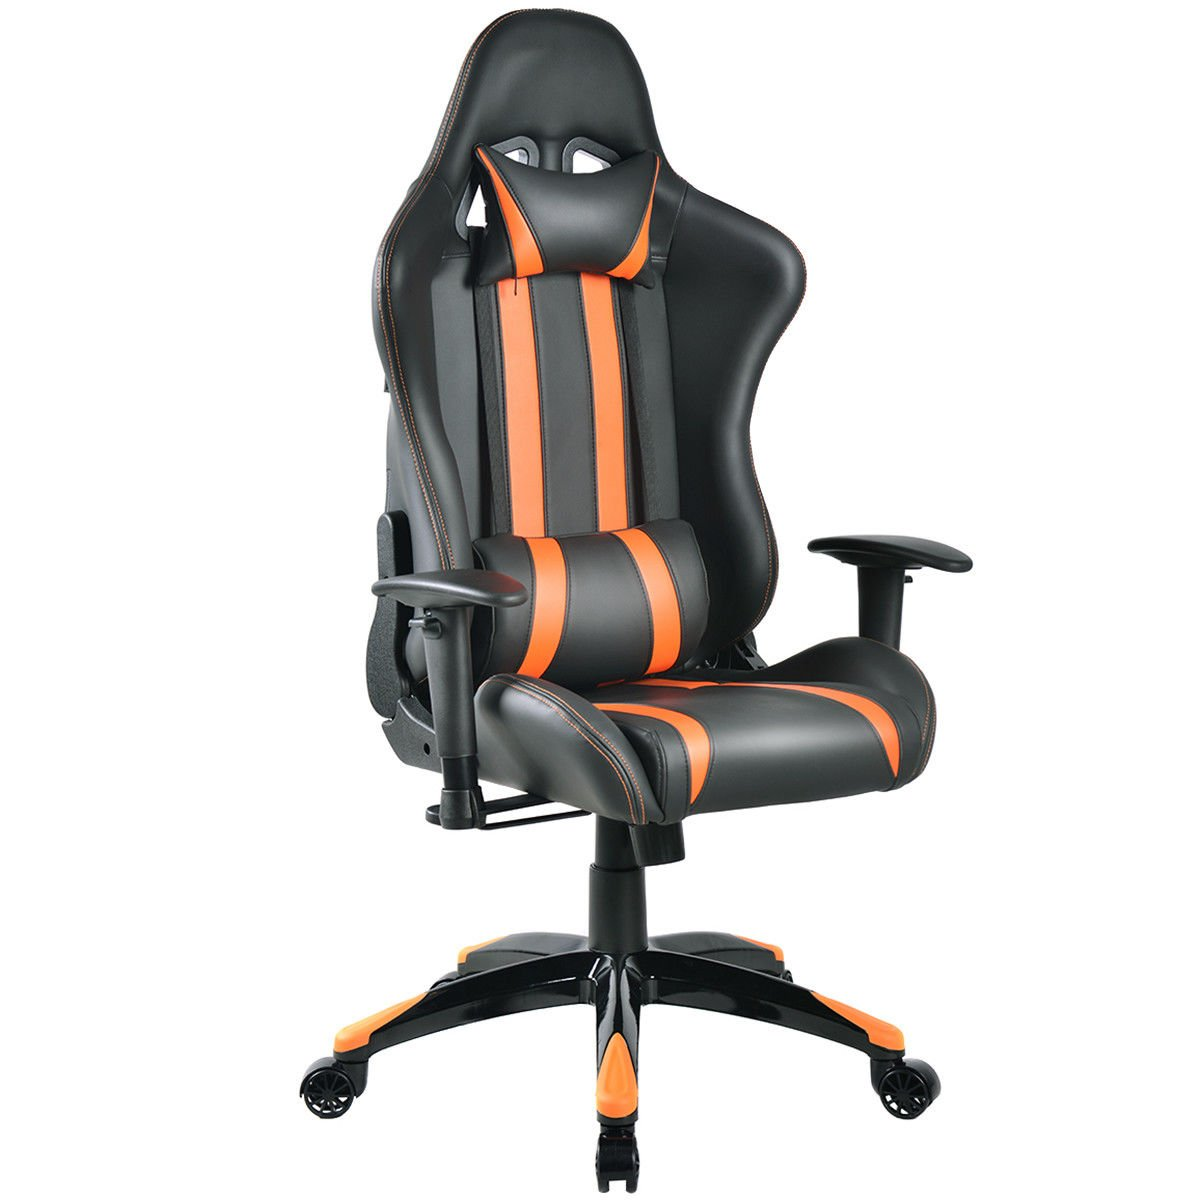 Giantex Racing High Back Reclining Gaming Chair Ergonomic Computer Desk Office Chair (Orange+Black)